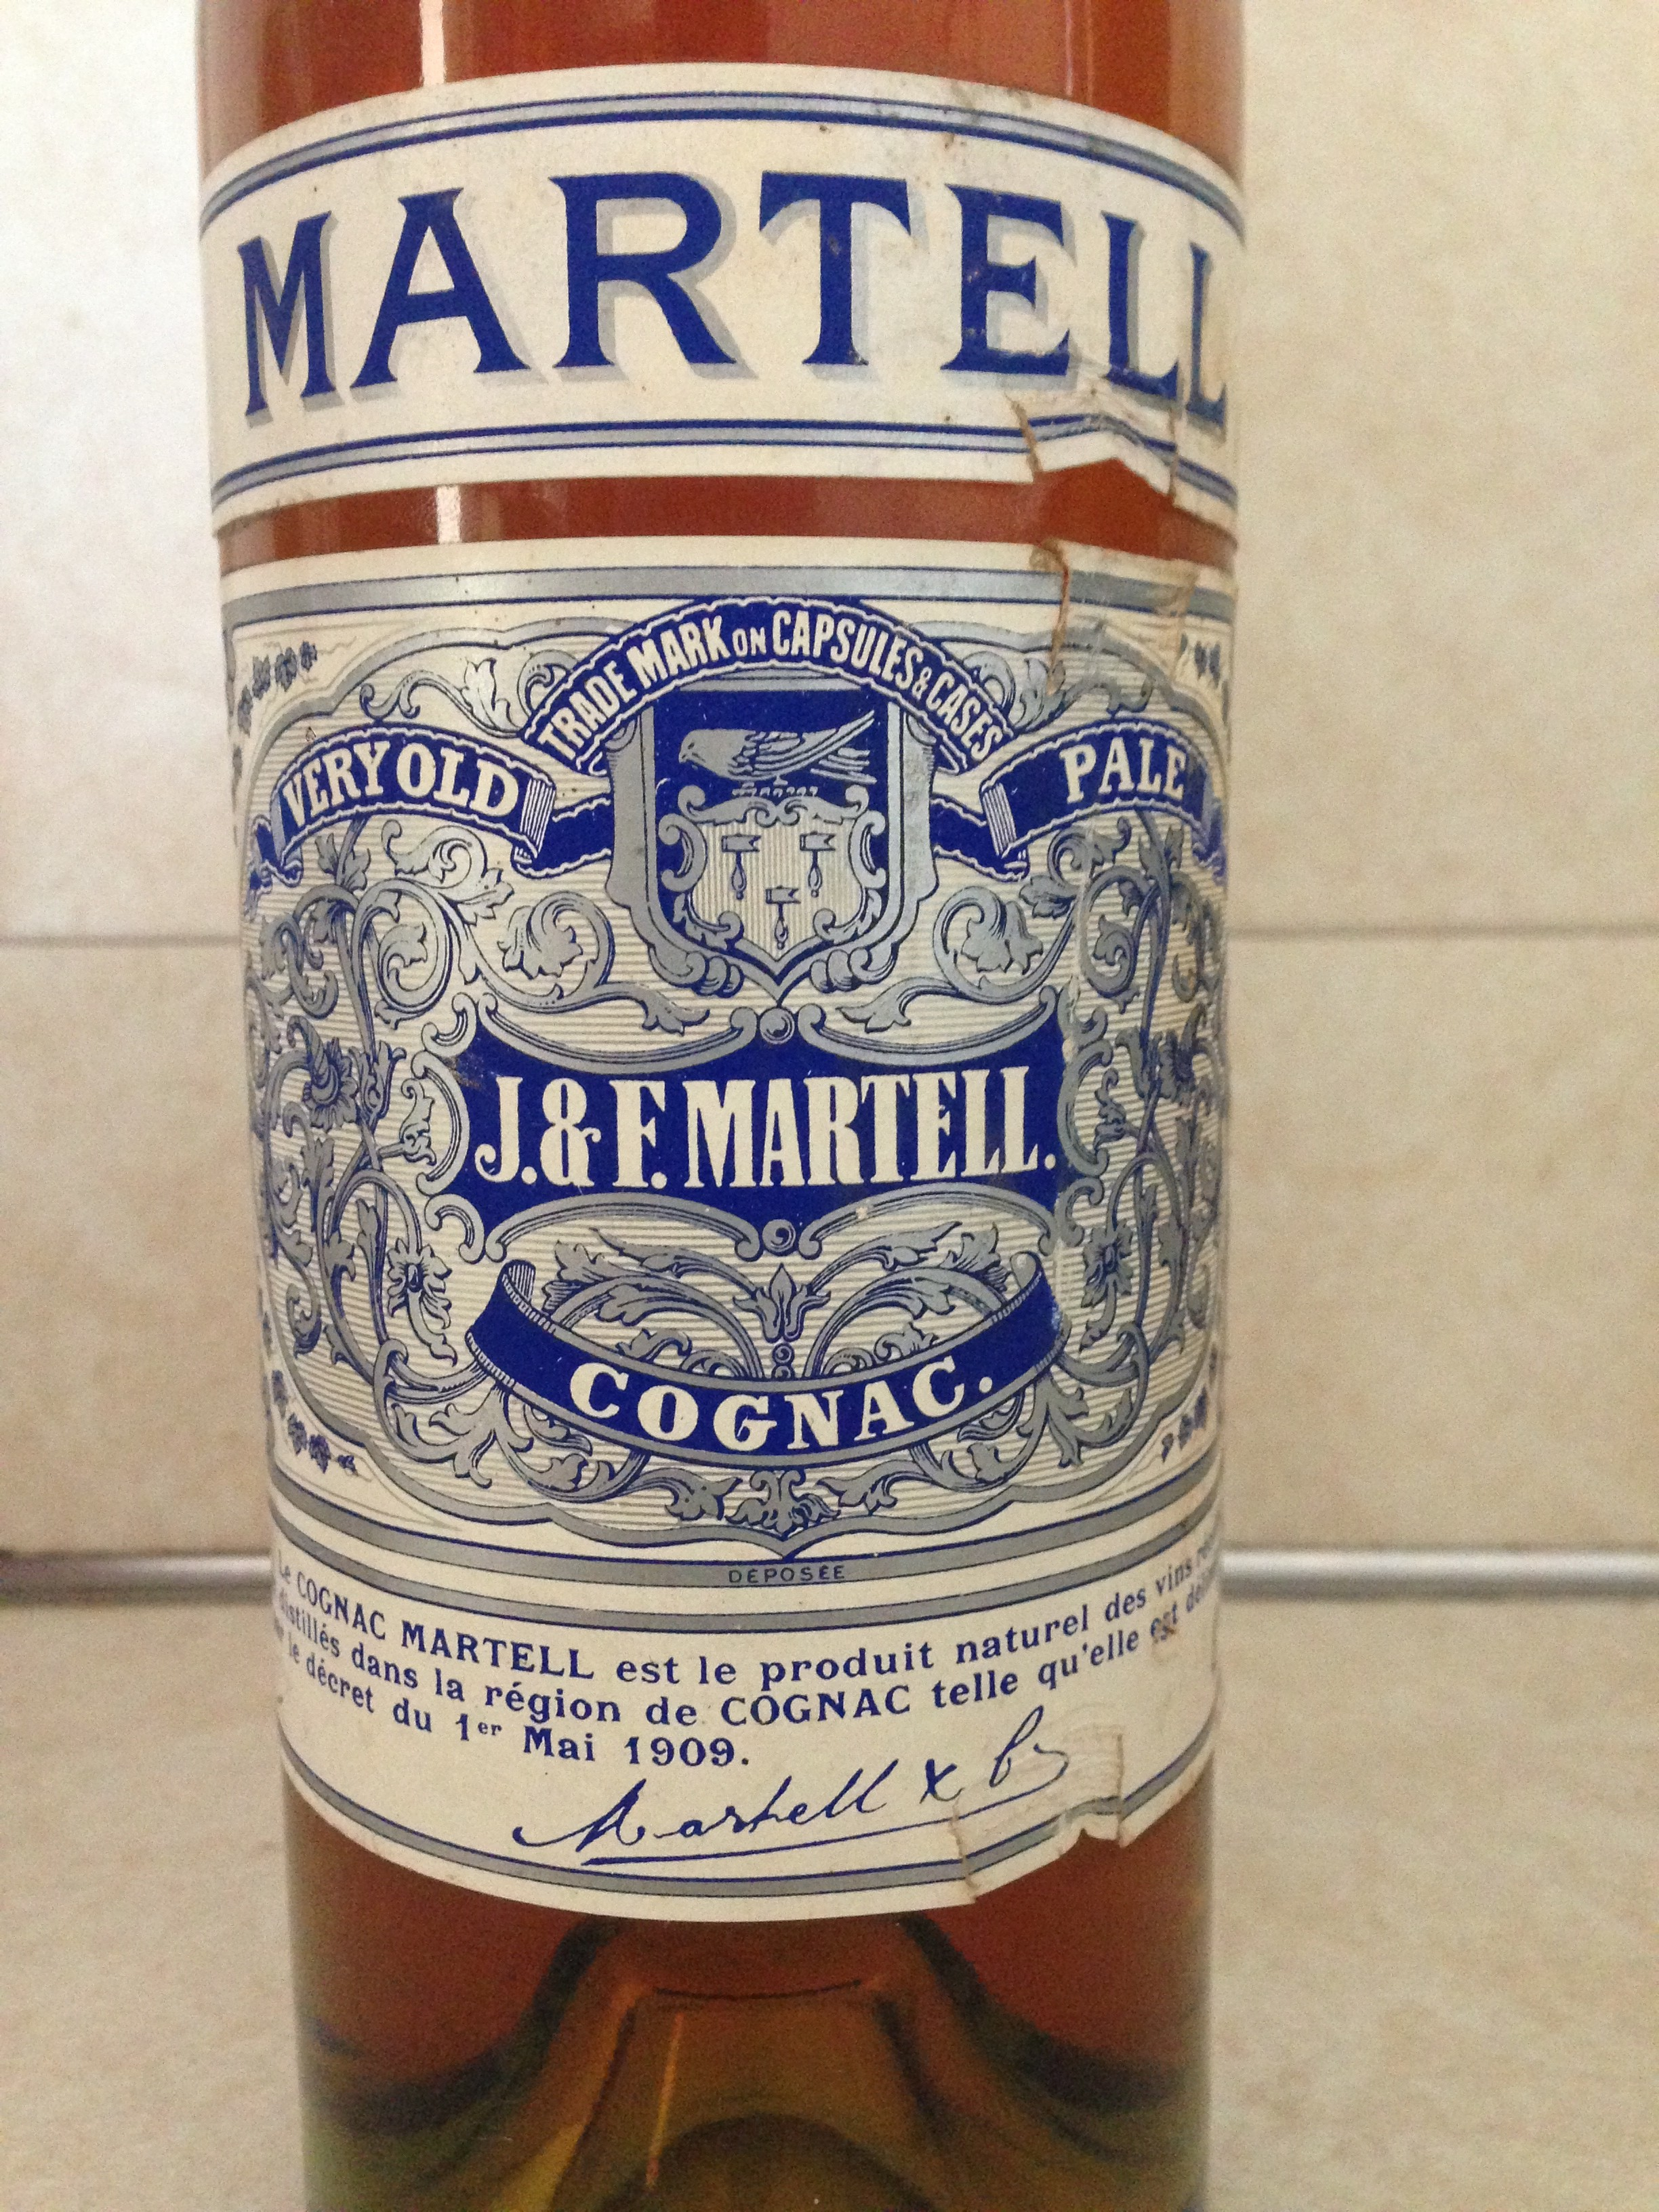 Martell Very Old Pale Cognac